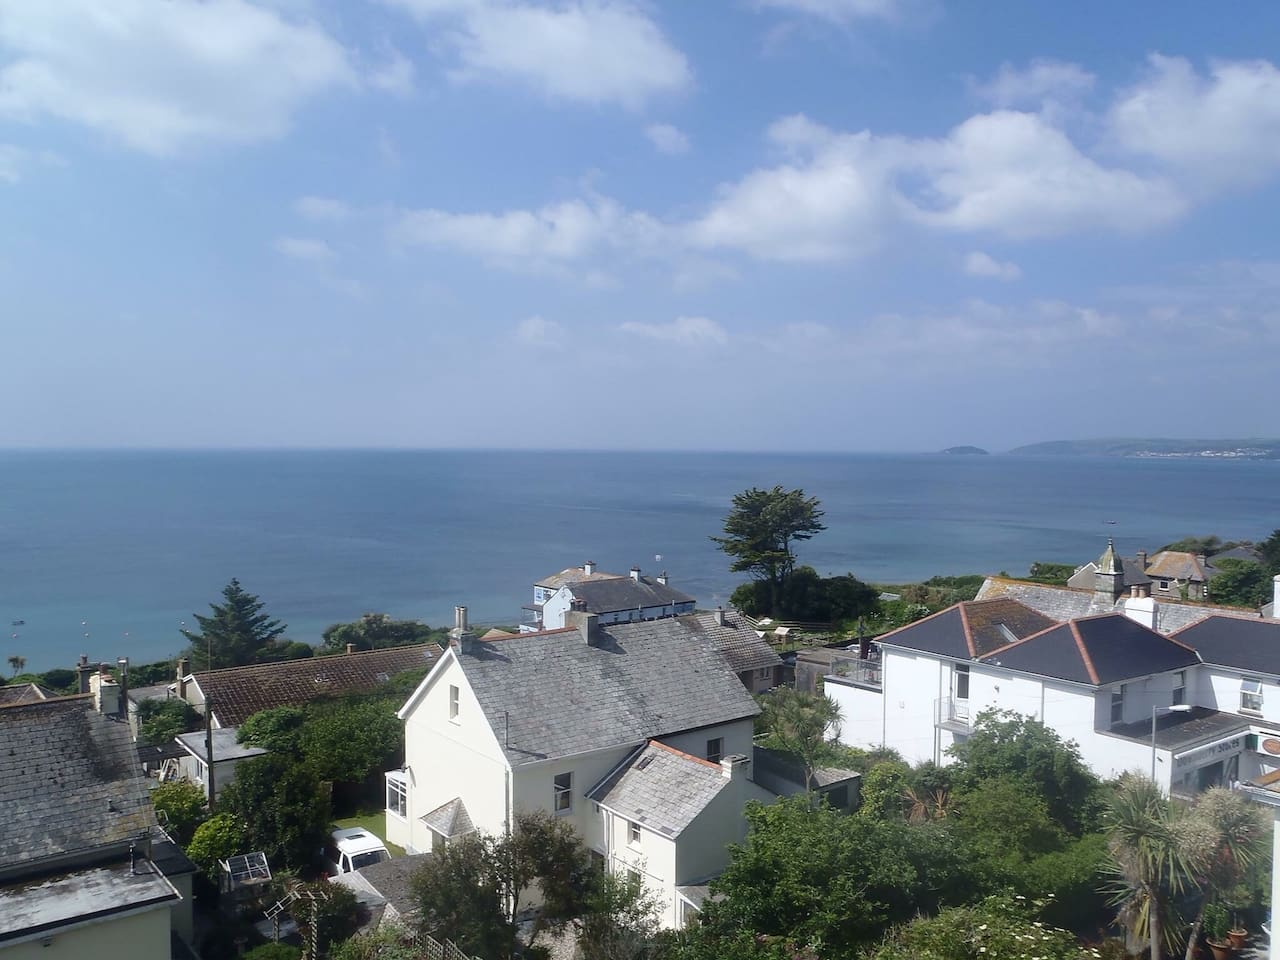 The view from the front window looking to the South West on an early summers day.